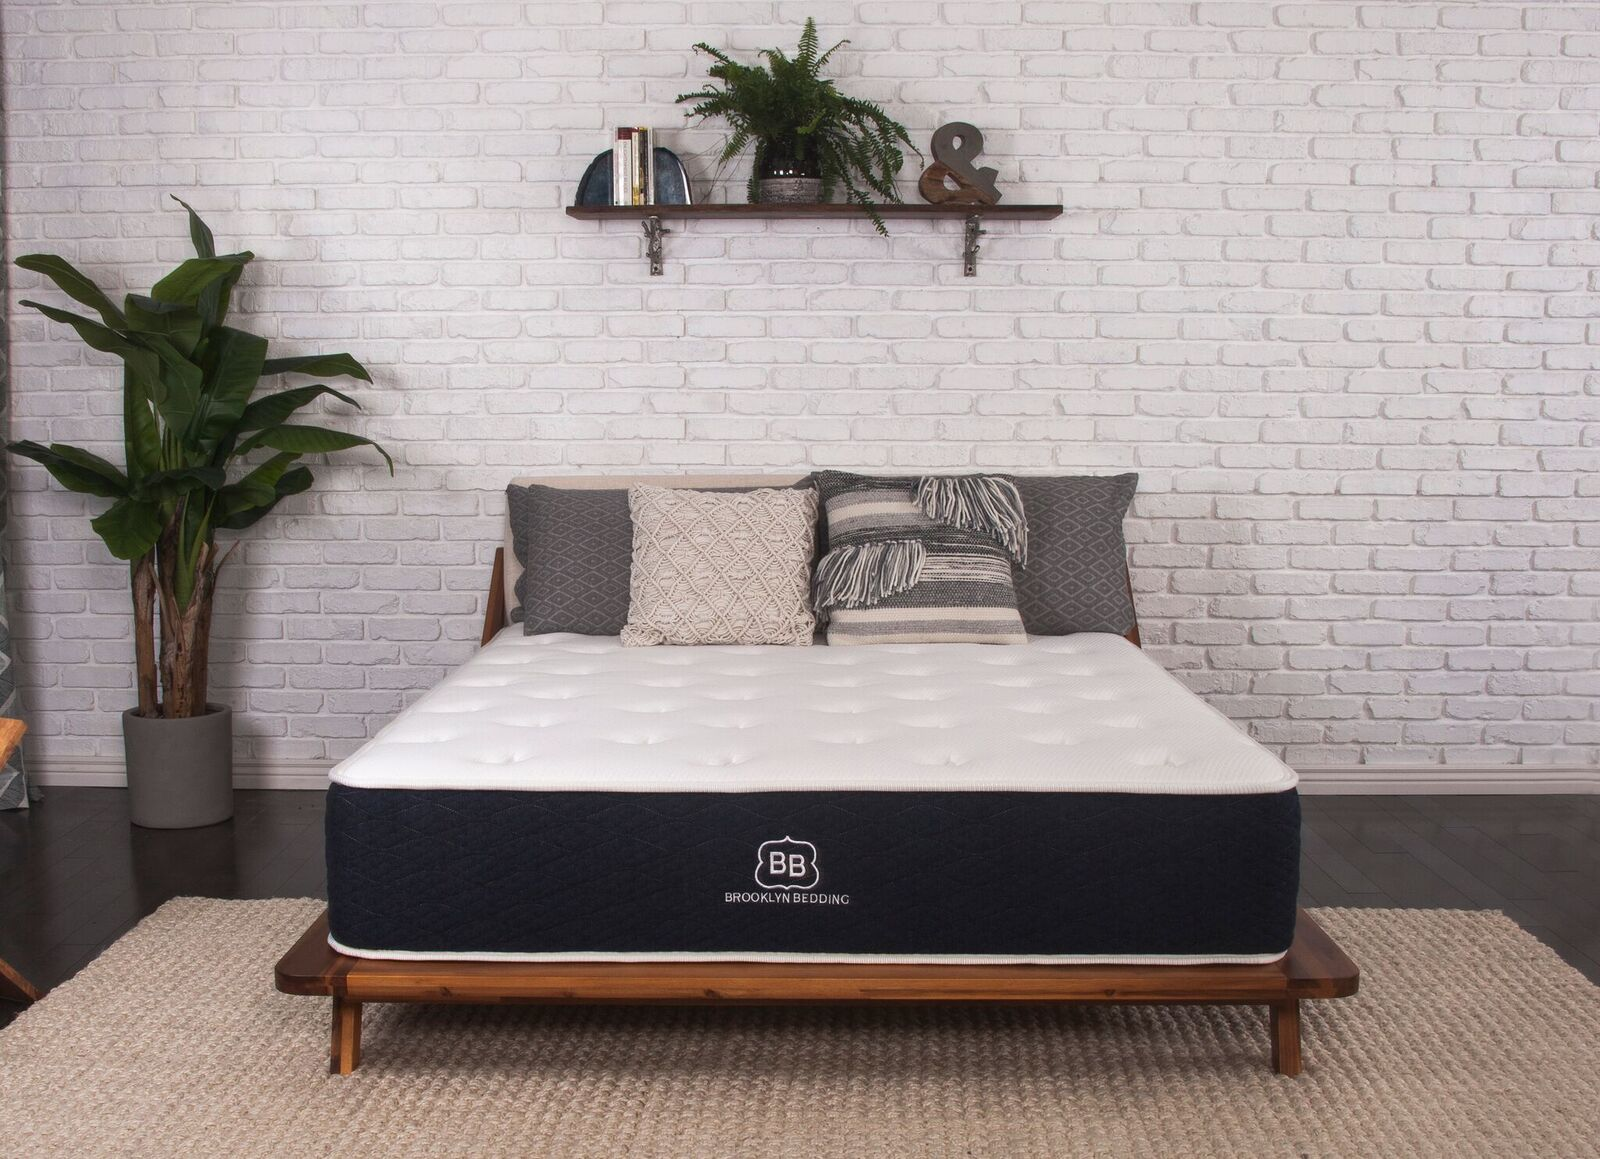 brooklyn bedding signature firm mattress reviews With brooklyn bedding firm review